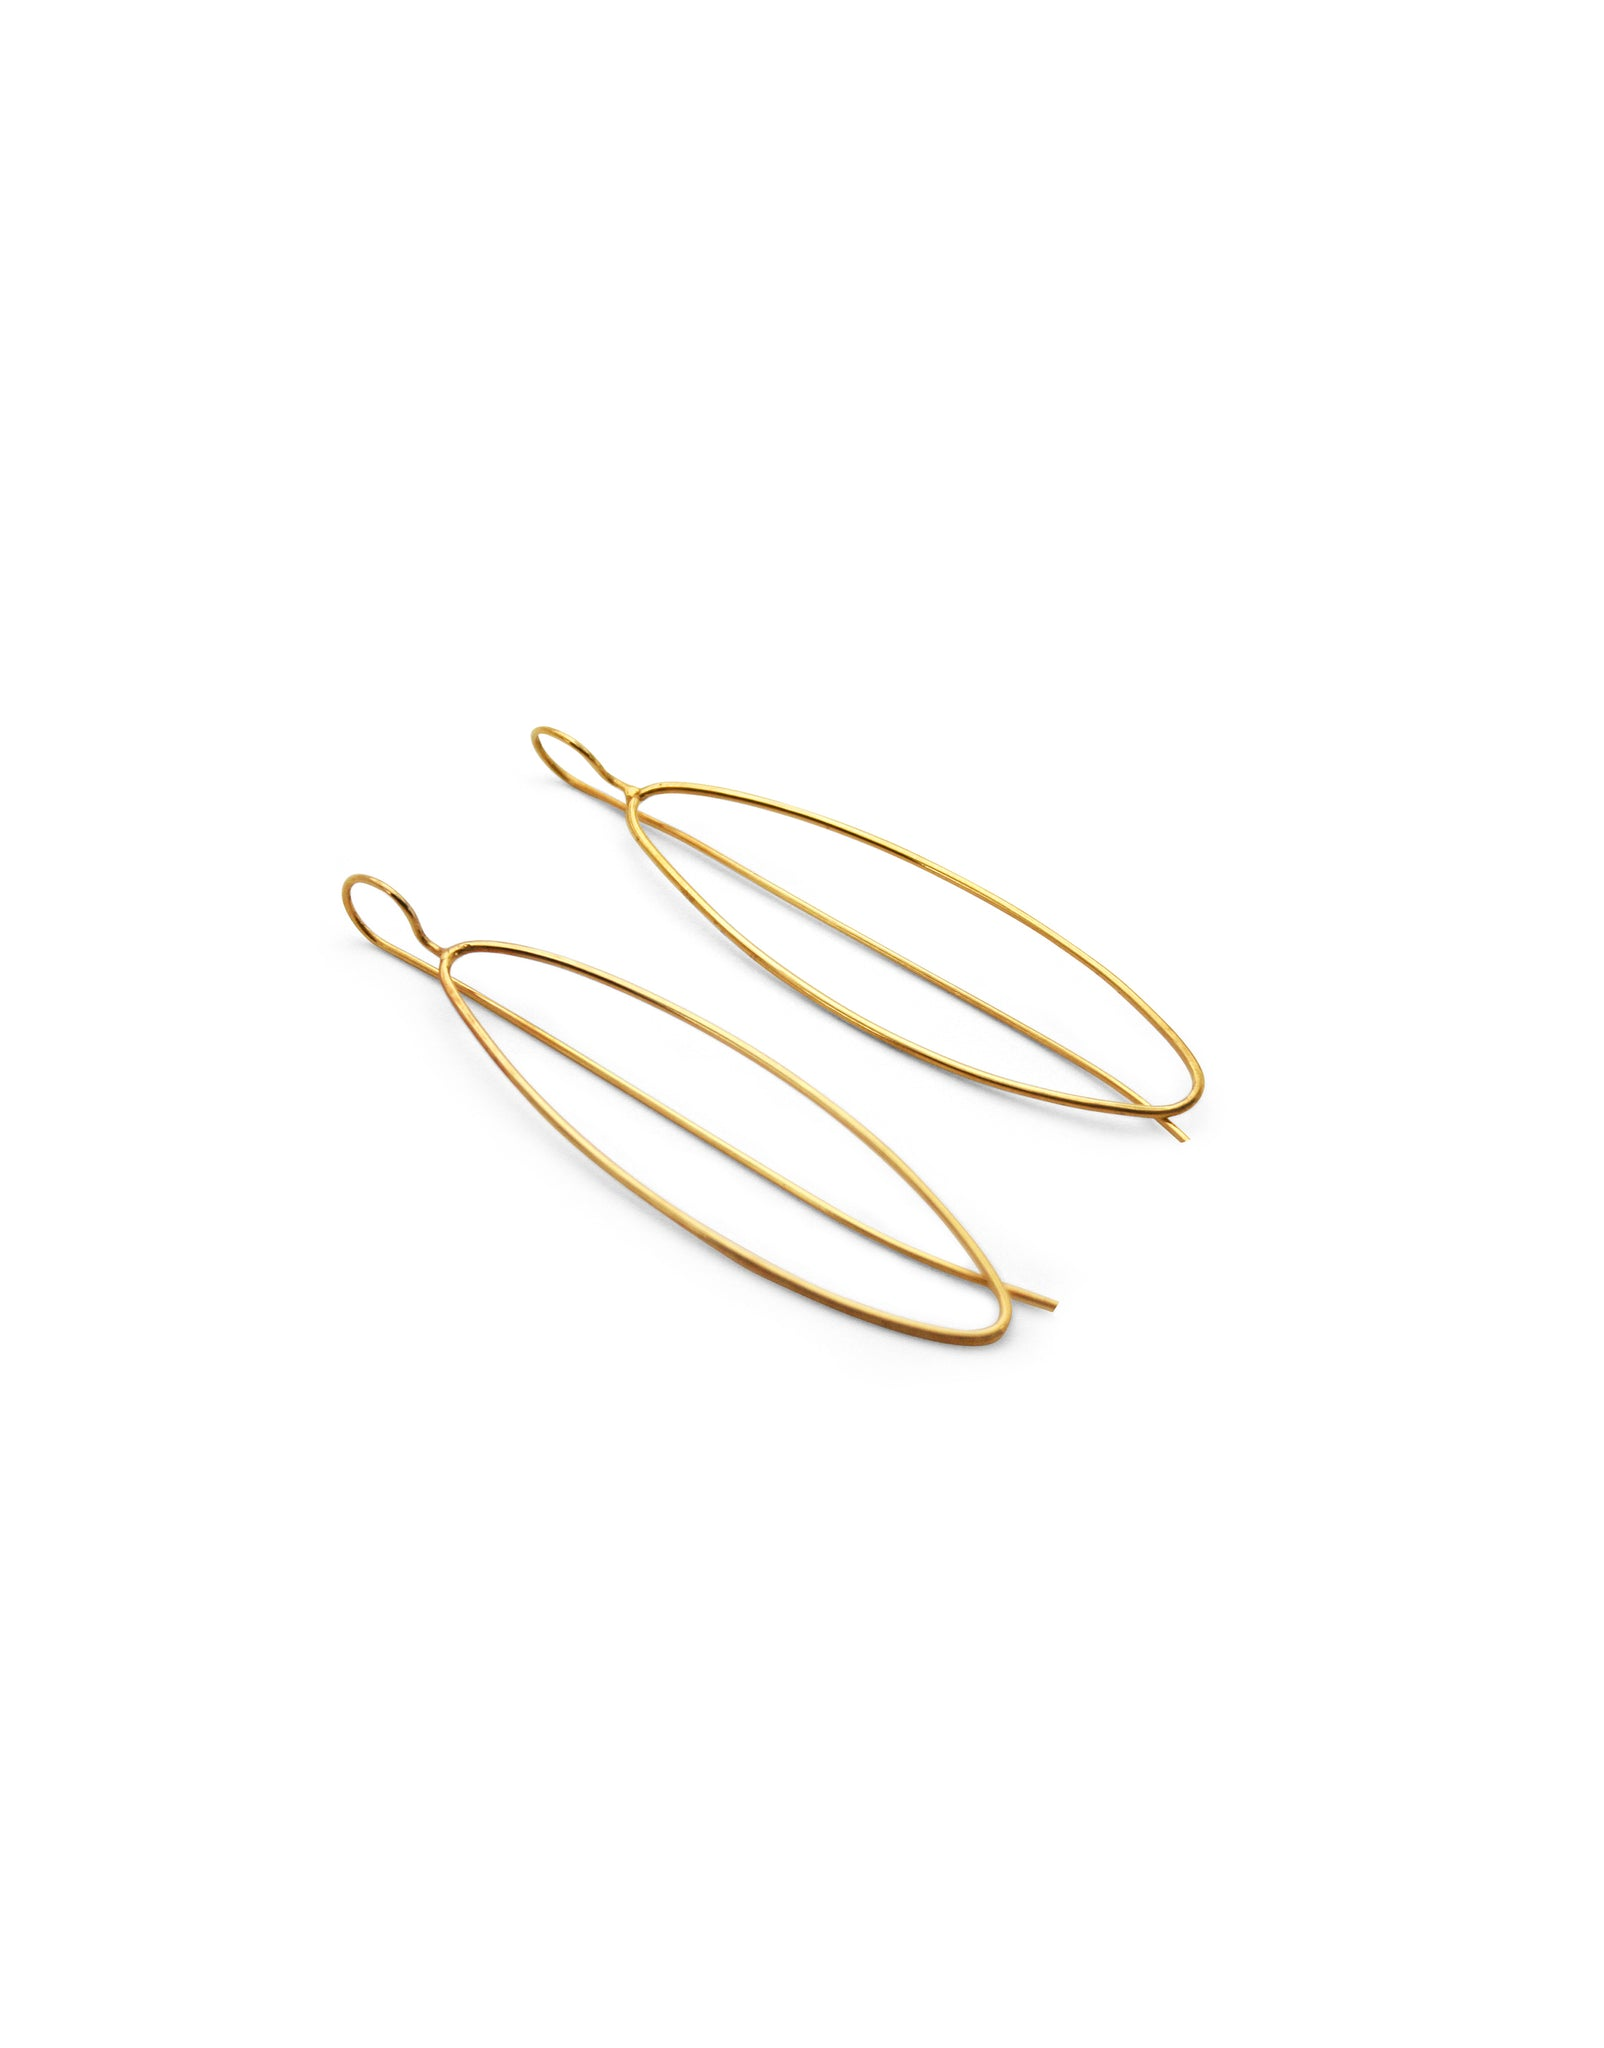 AMANDE EARRINGS GOLD-PLATED